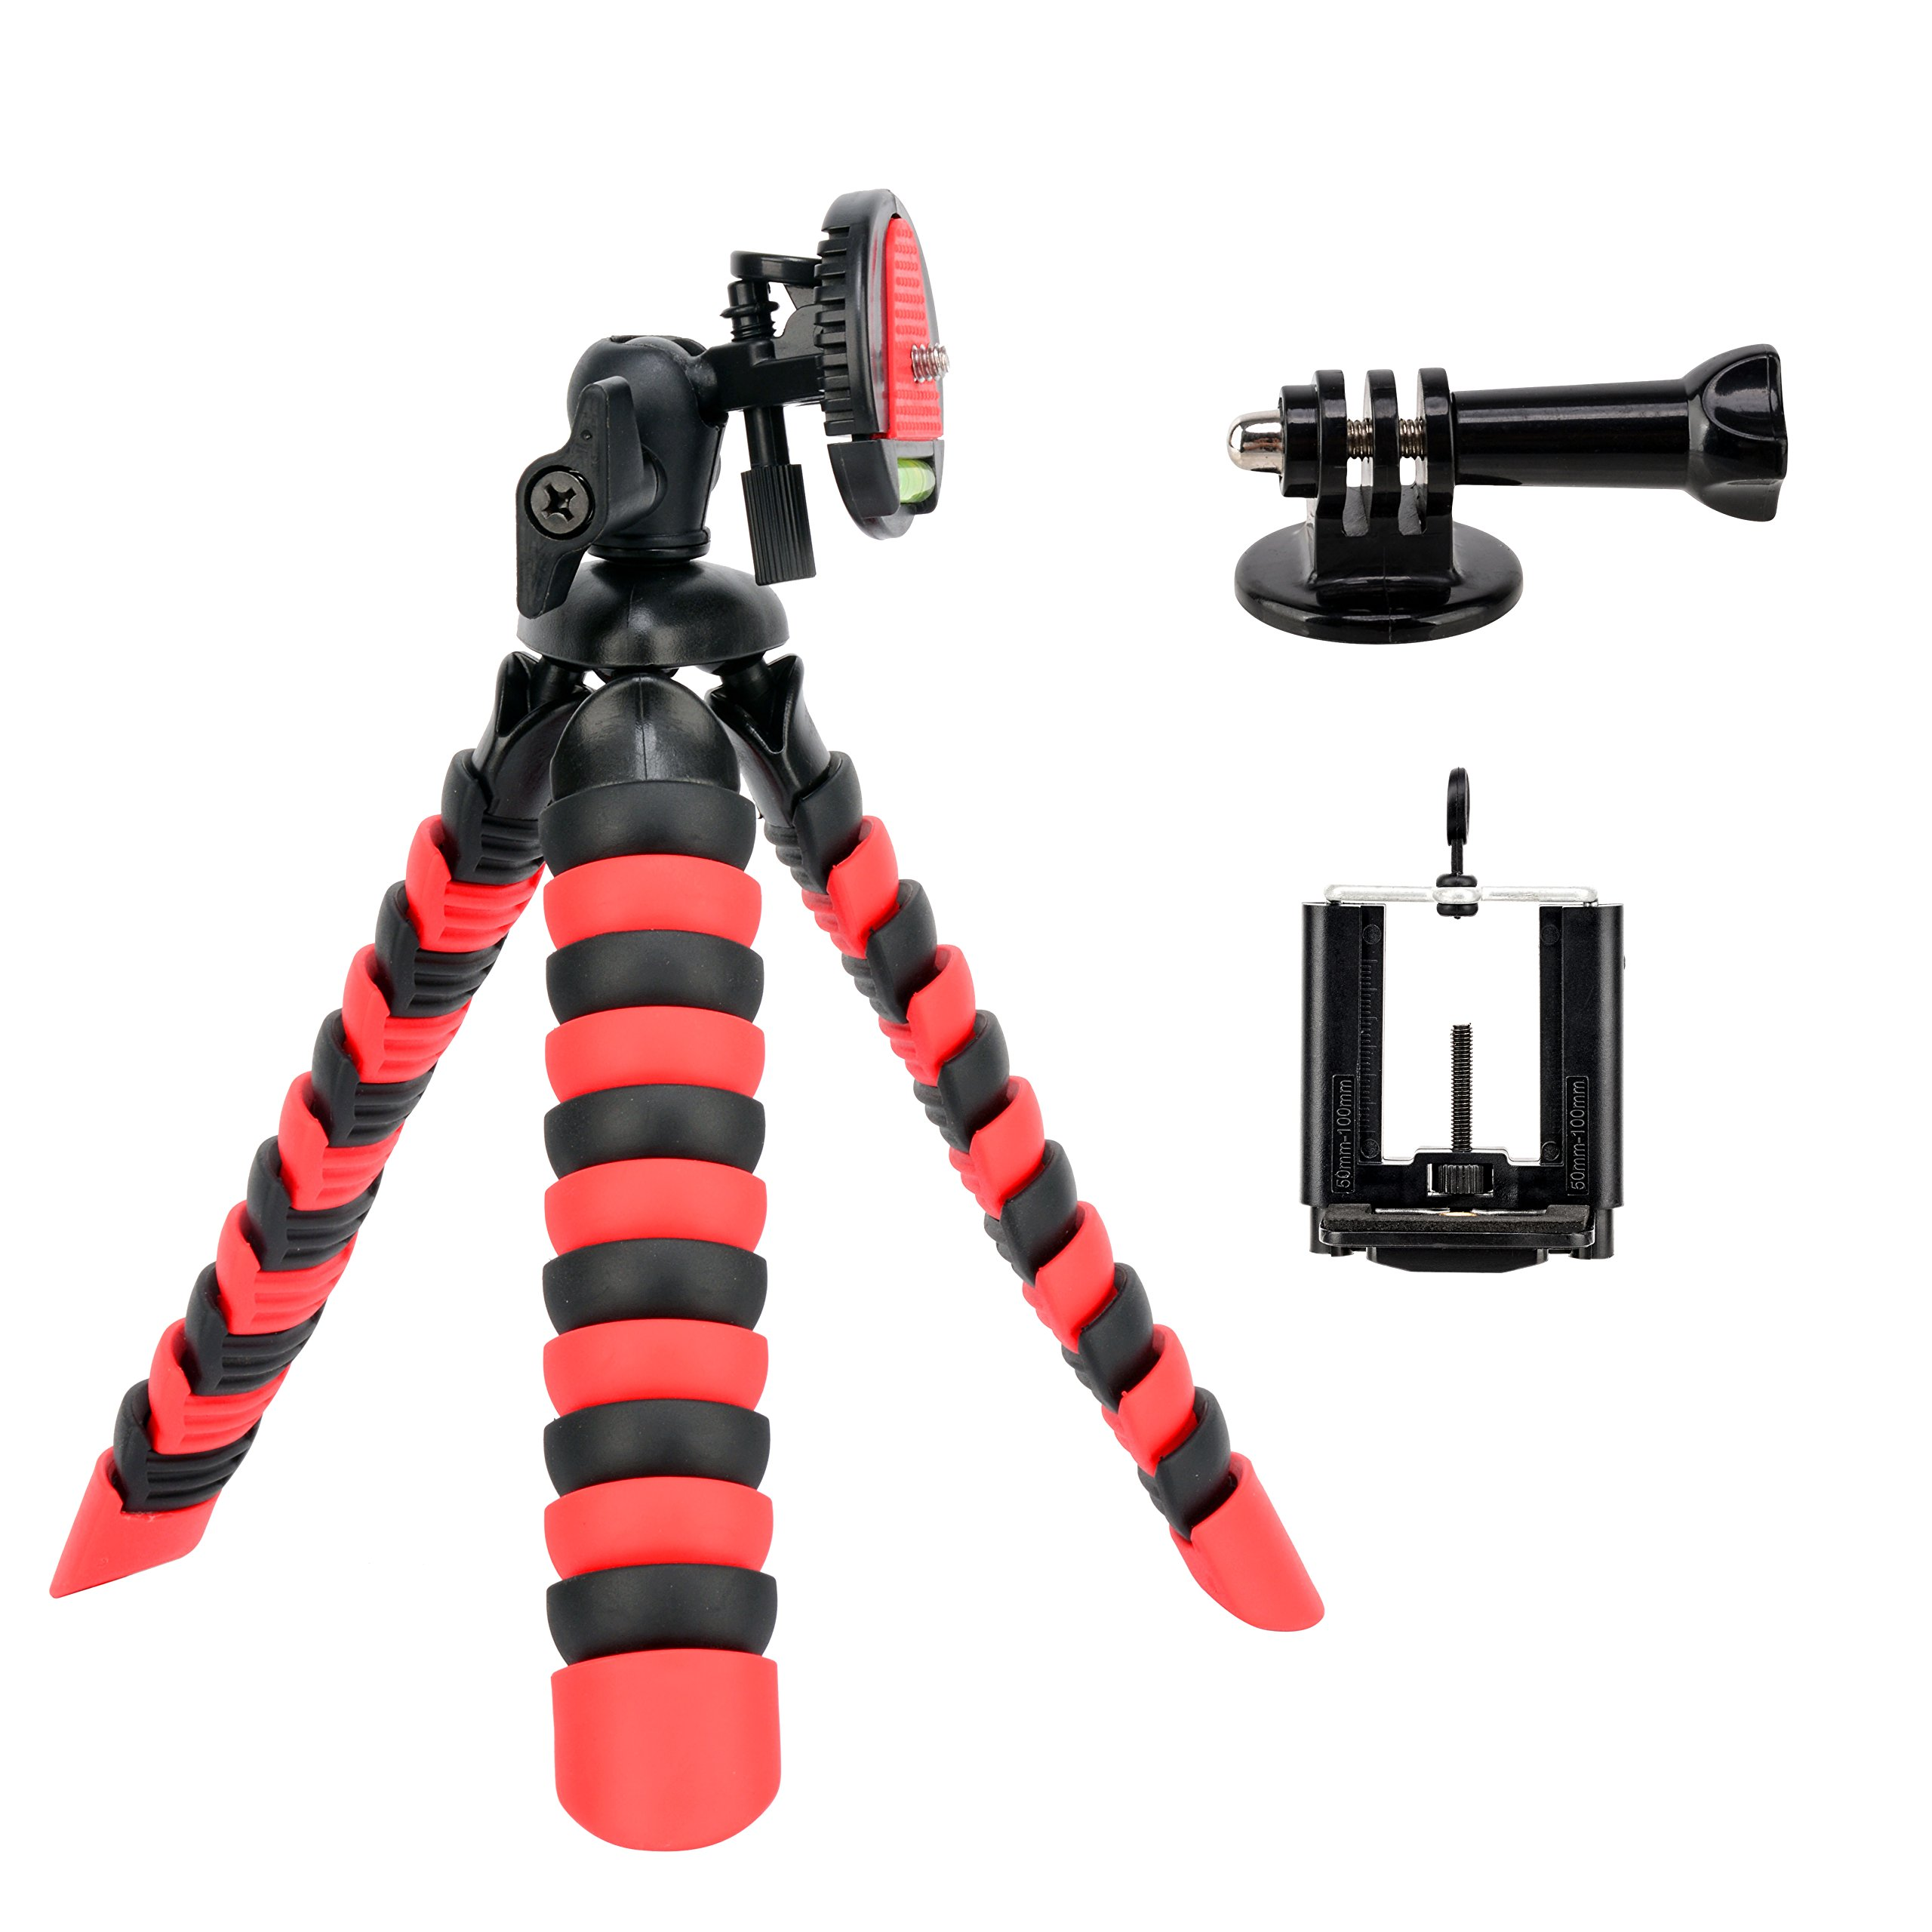 Tairoad 3 in 1 Flexible Mini Tripod for DSLR/Action Cam/Smartphone Bendable Tripod Selfie Monopod